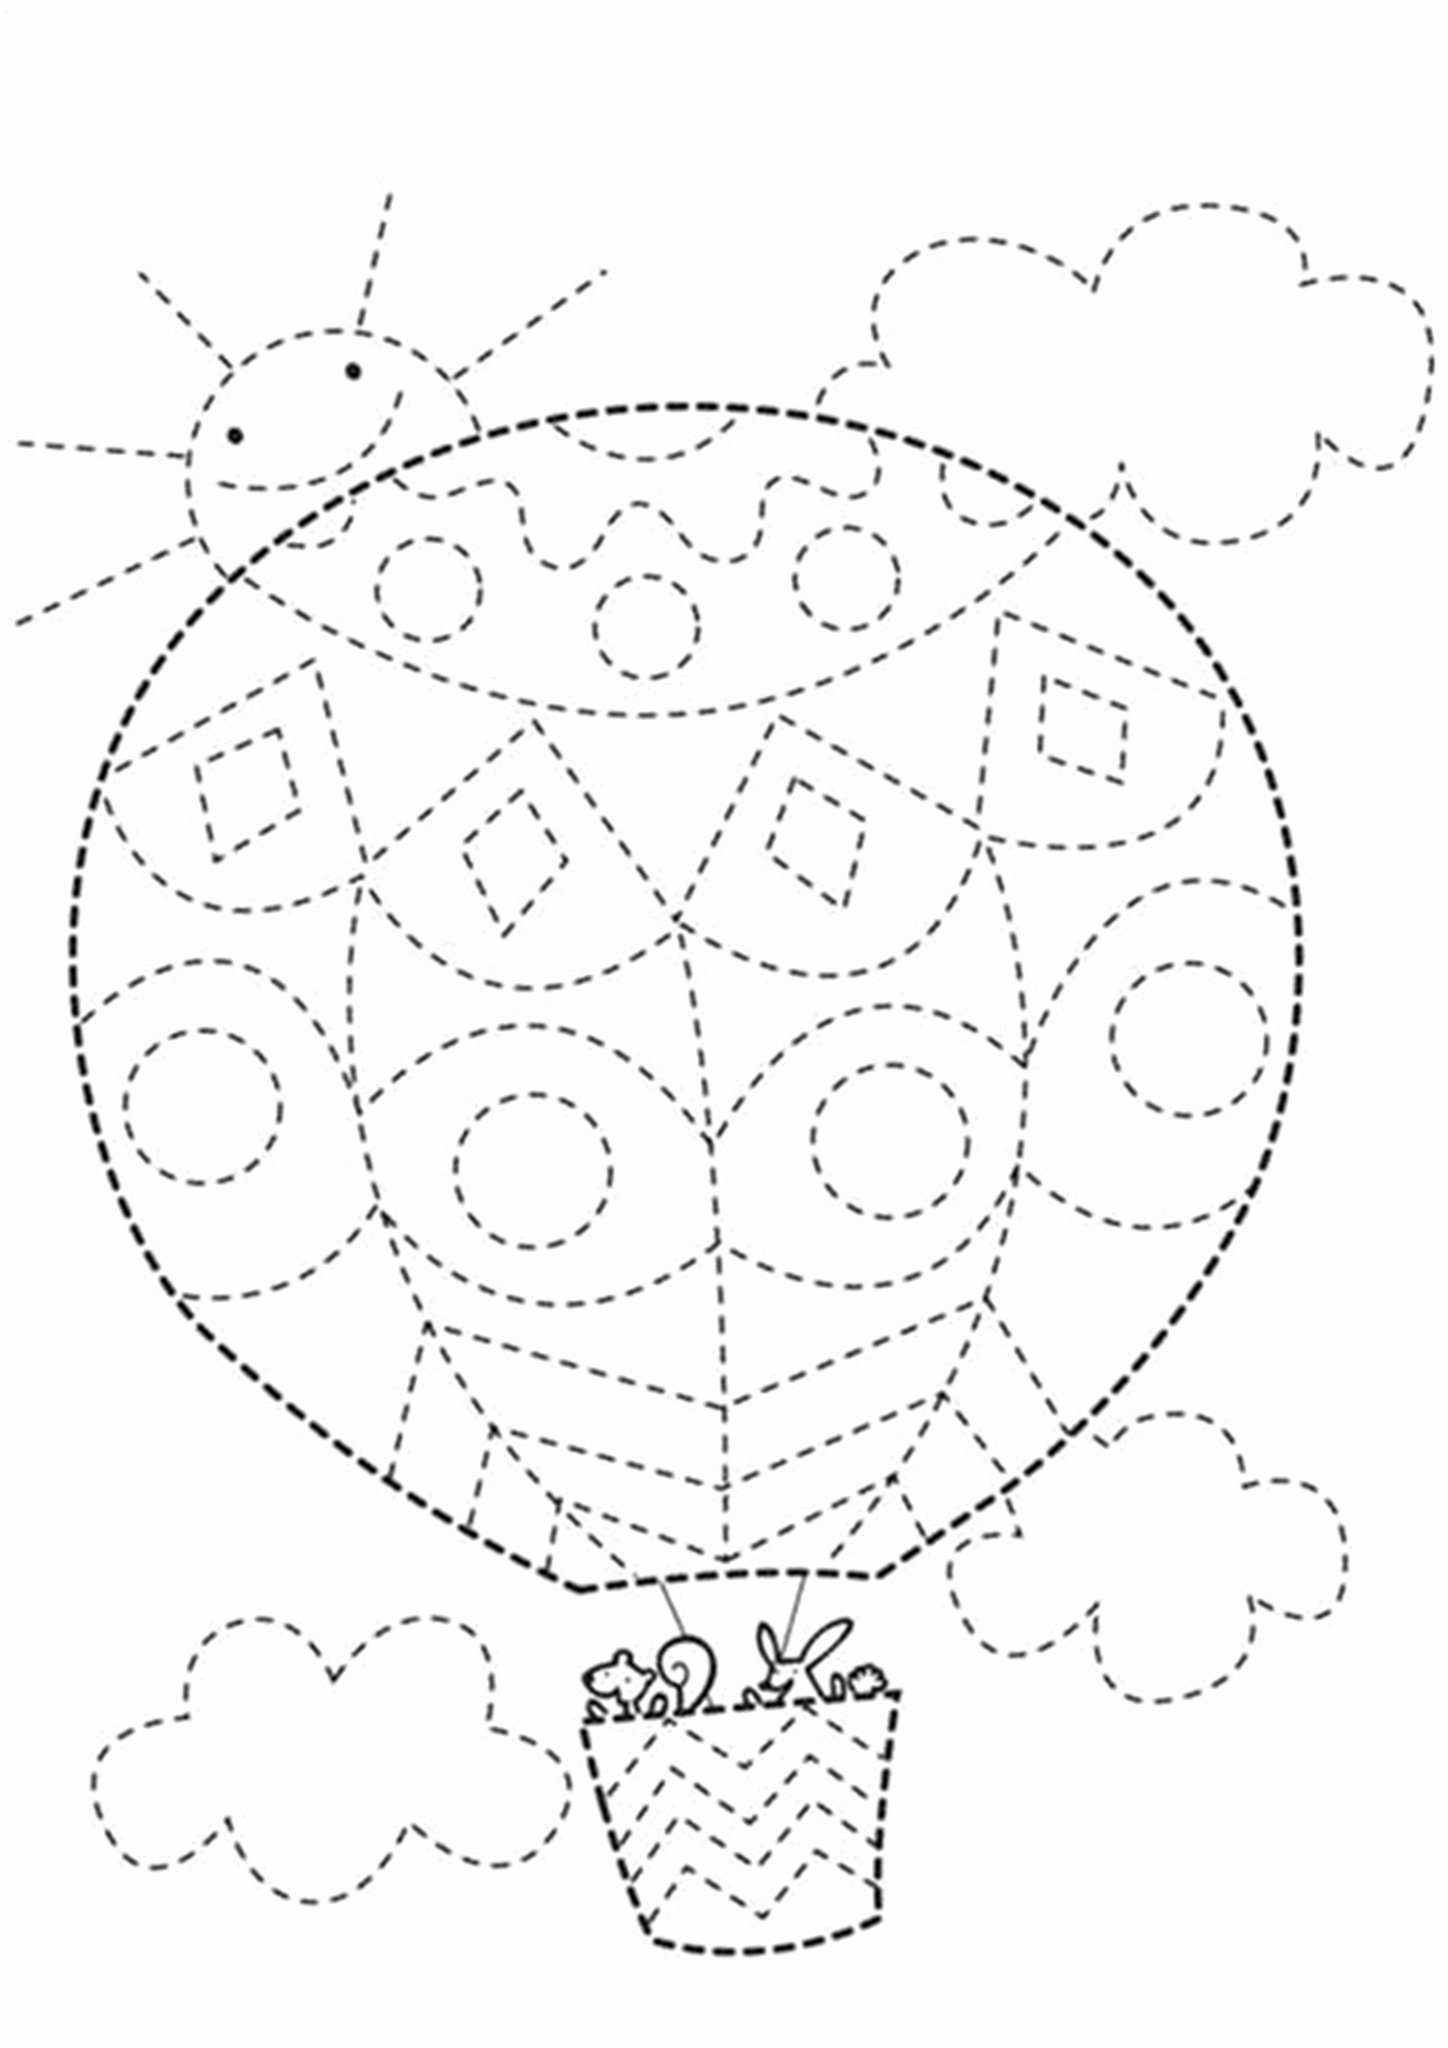 Tracing Lines Worksheets for Preschoolers Inspirational Worksheets Free and Easy to Print Tracing Lines Worksheets